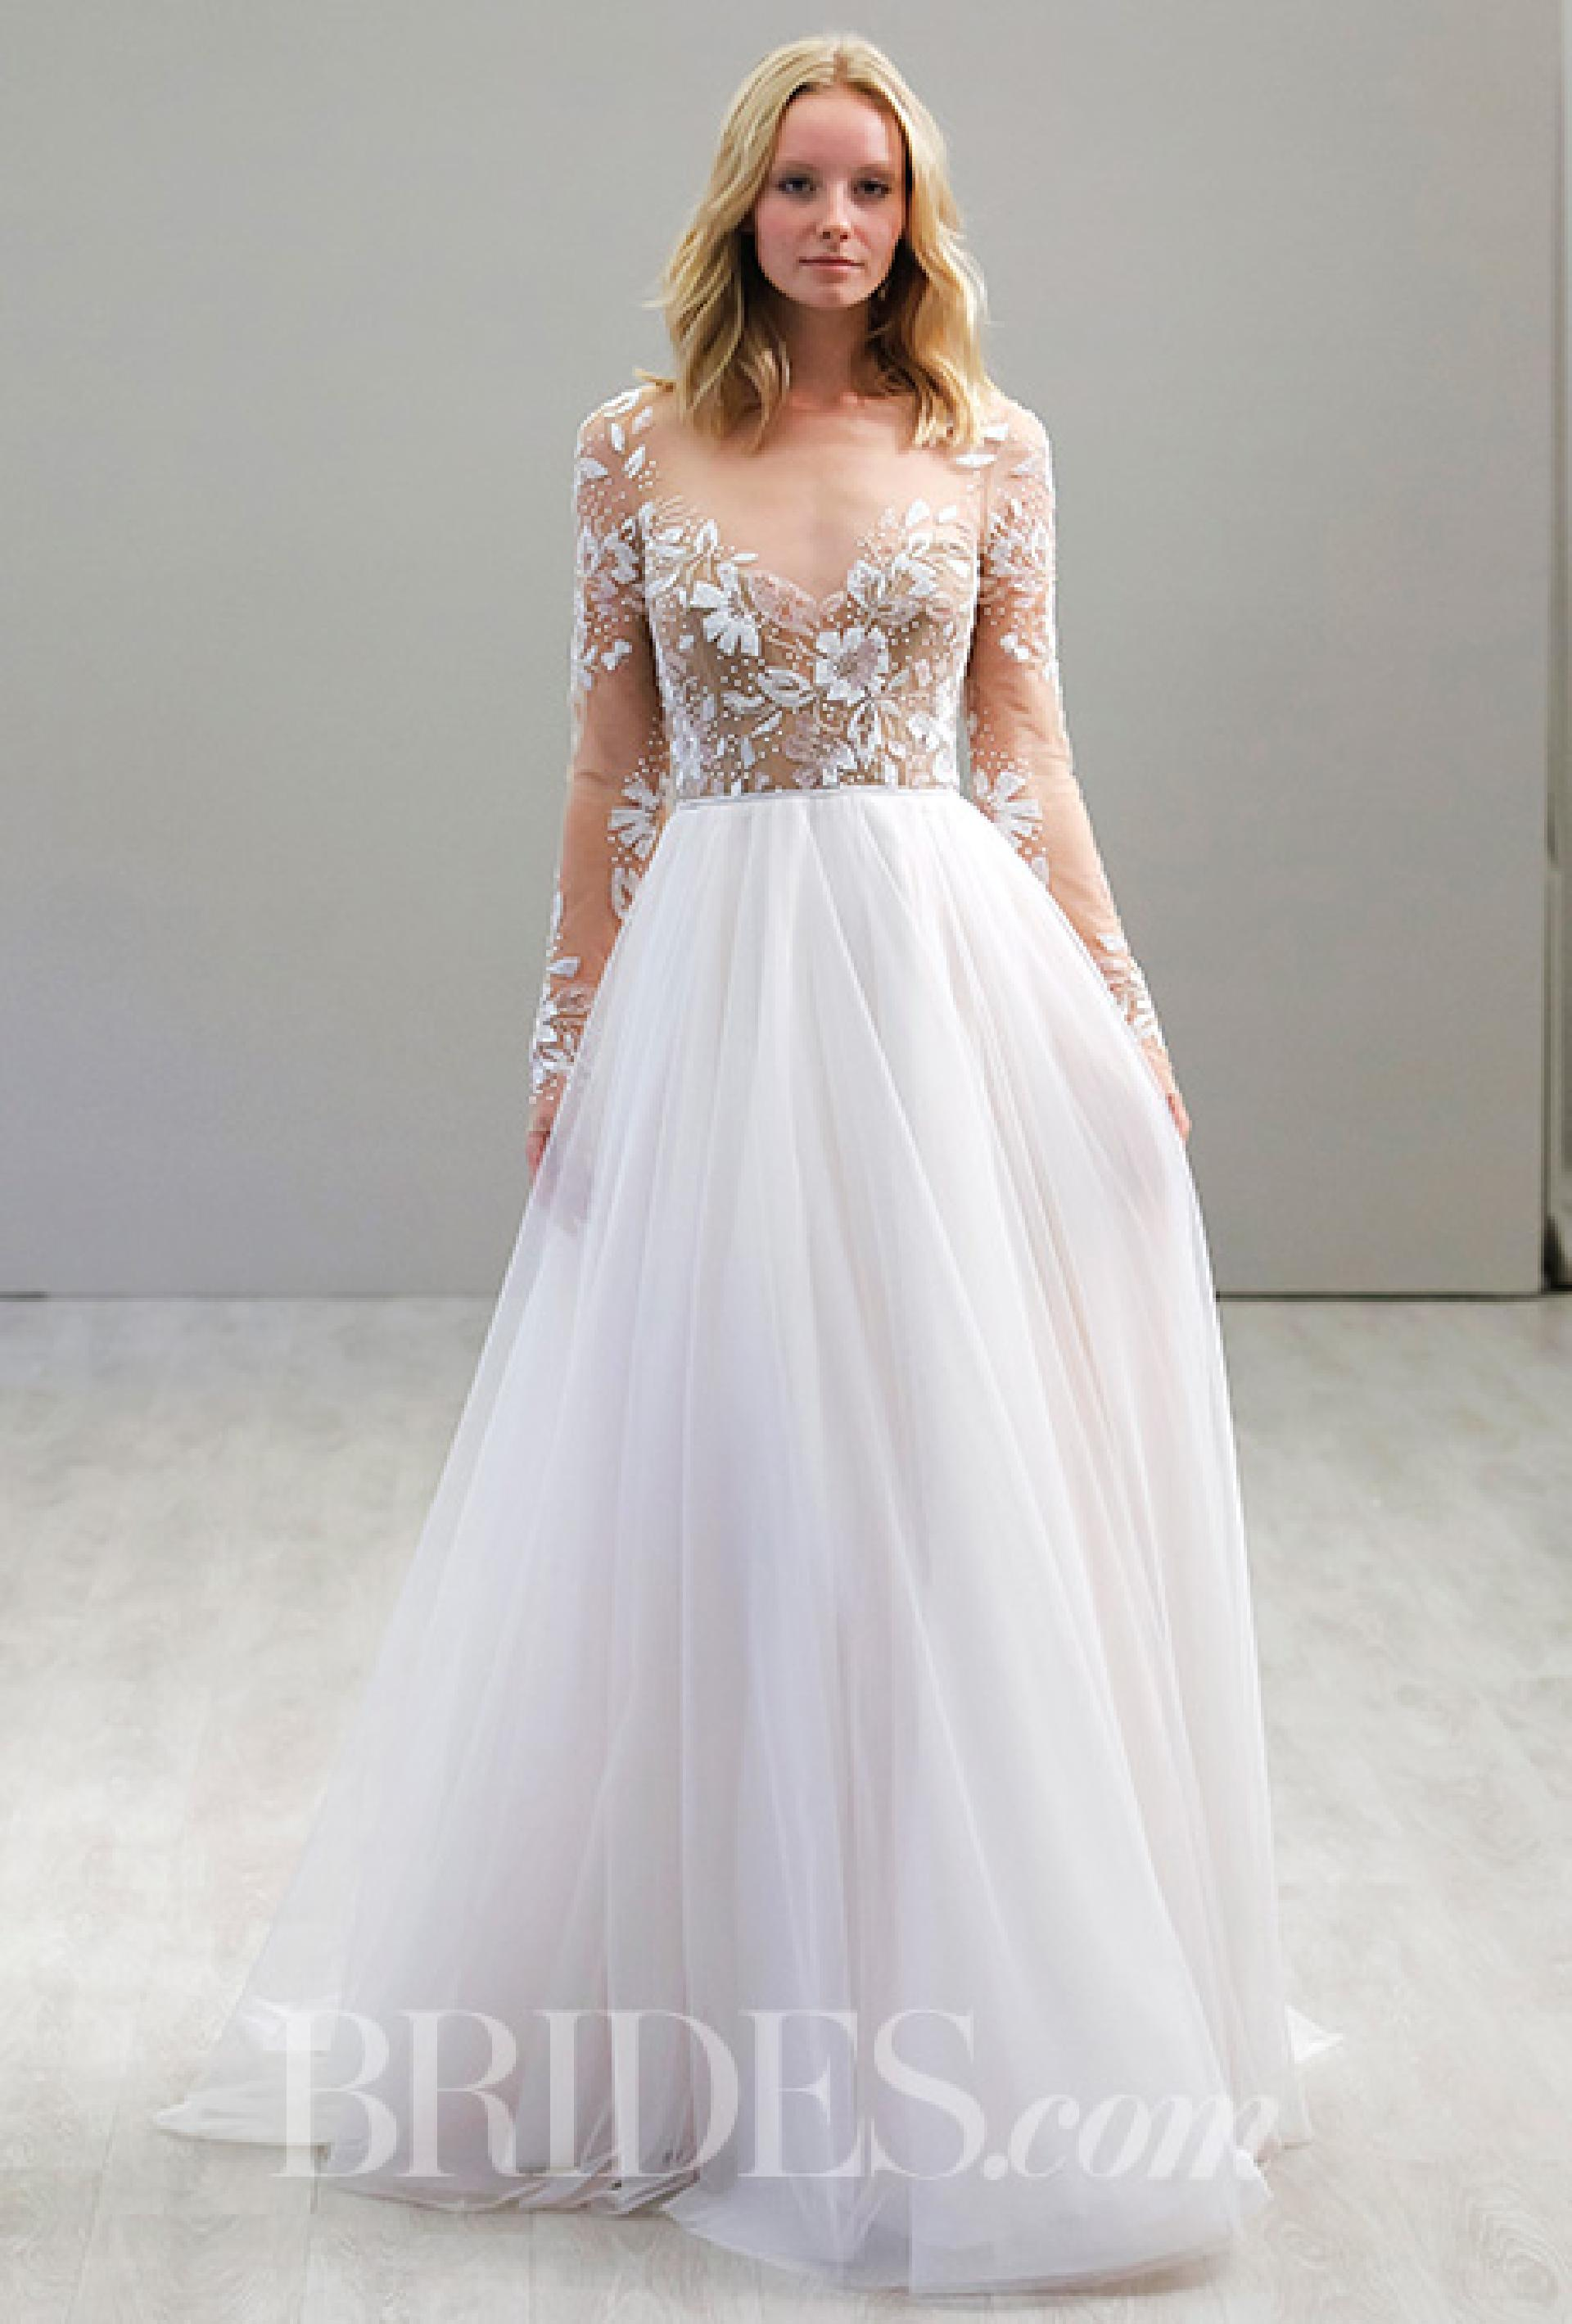 hayley paige bridal hayley paige wedding dresses Hayley Paige Bridal Collection